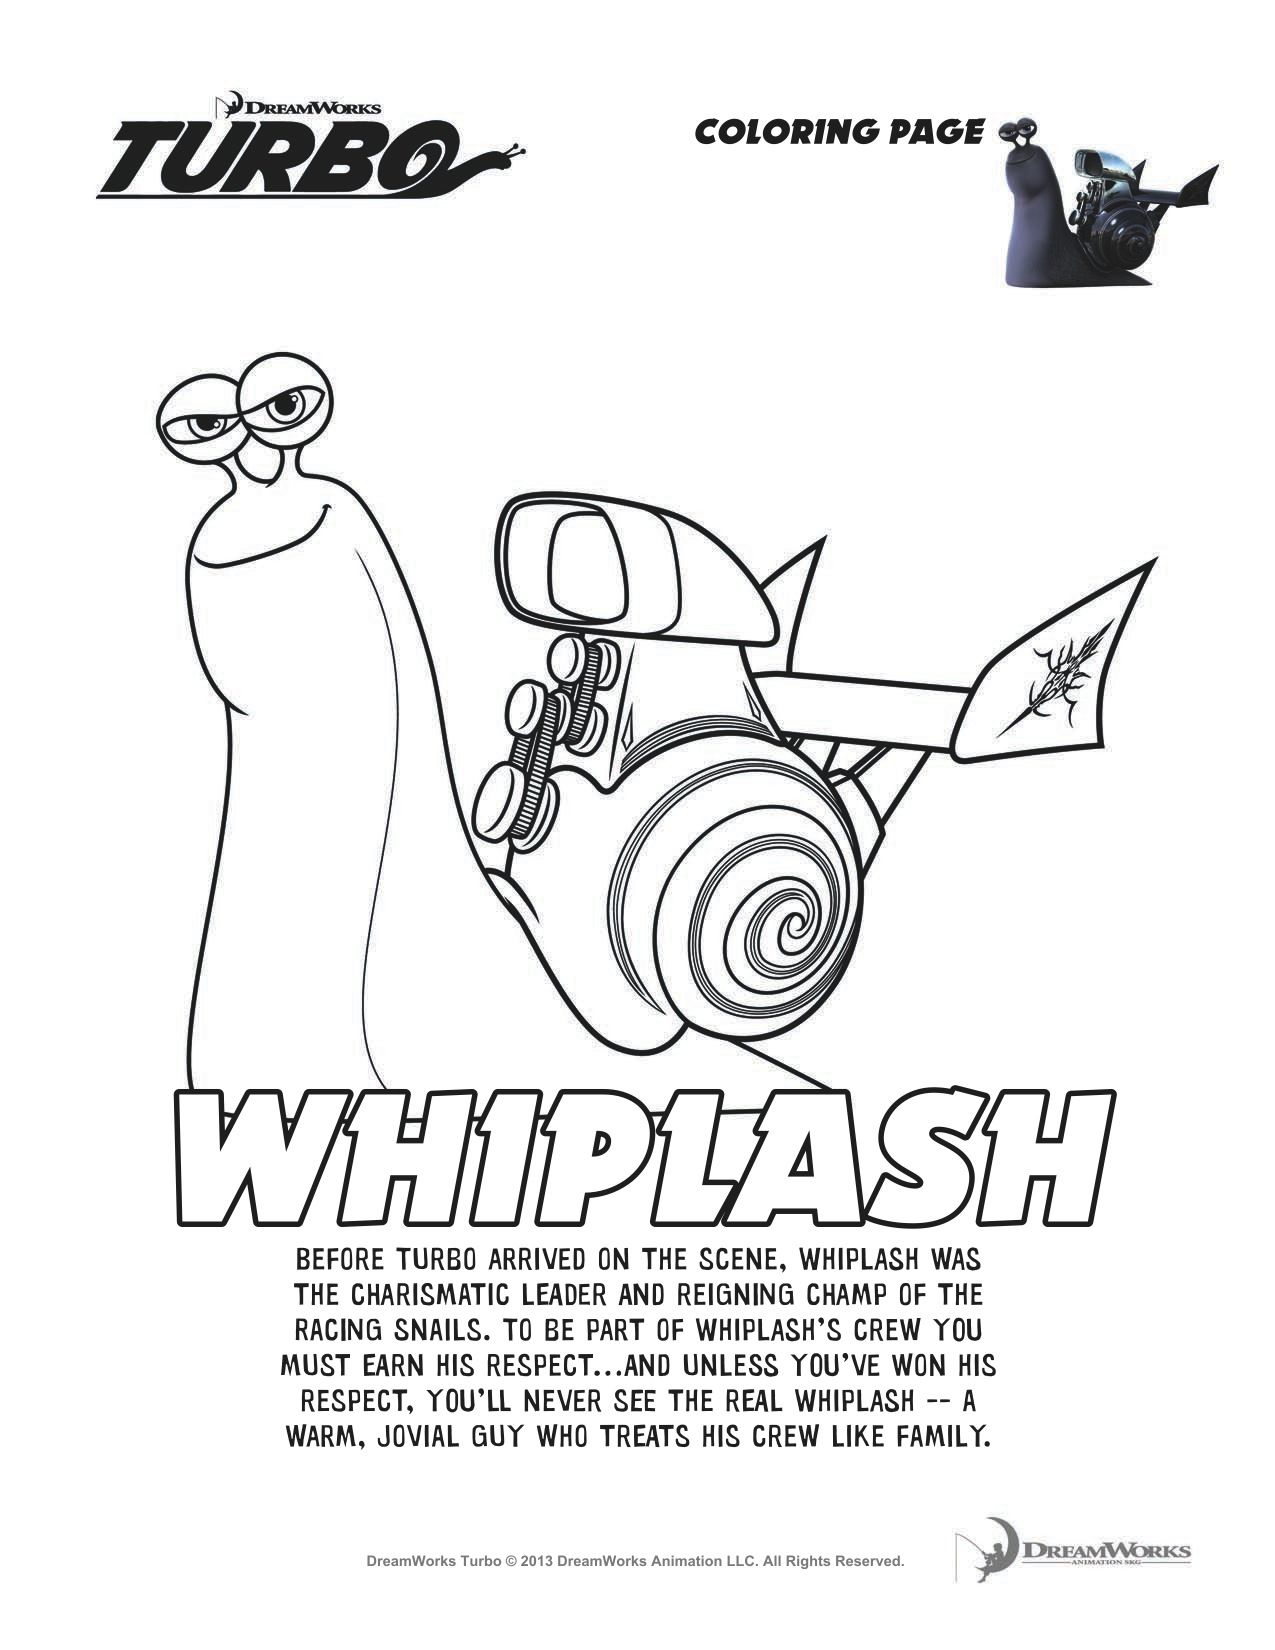 Turbo Whiplash Coloring Sheet Turbo Pinterest Birthdays